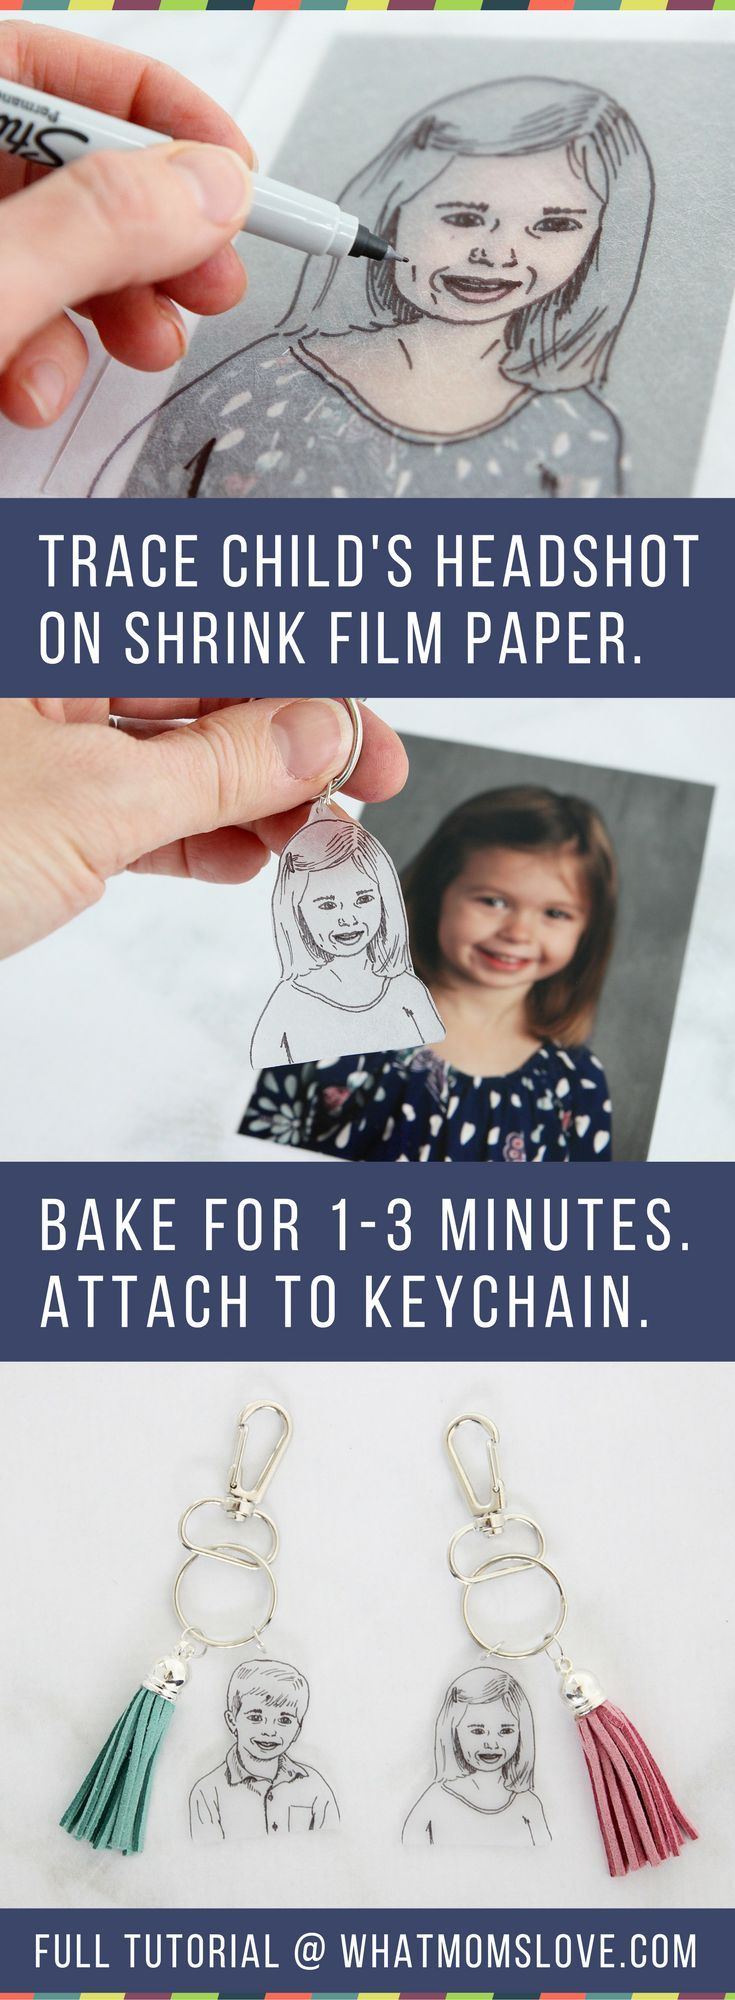 This easy to make Mother's Day or Father's Day craft for kids is the perfect homemade keepsake to give to mom, dad, grandma or grandpa. Use Shrinky Dinks to create a DIY initial and headshot keychain - they're simple to make but totally unique. Anyone can make them, from toddlers to teens. Makes a great last minute gift from the kids or grandkids for Mother's Day, Father's Day, Grandparents Day, birthdays or Christmas!